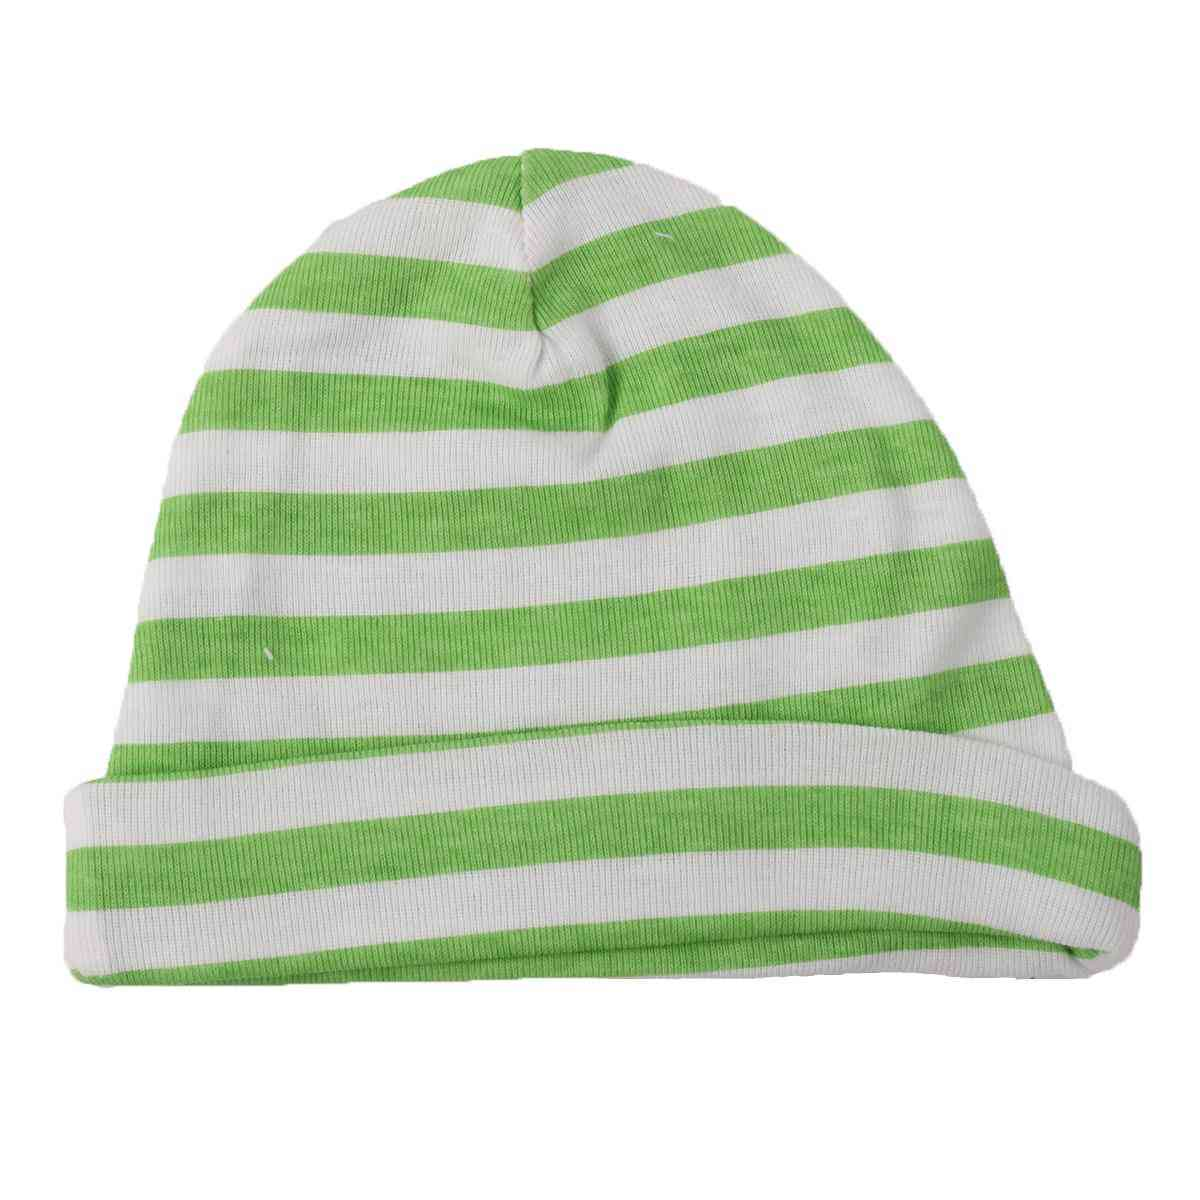 Asaan Bachpan Baby Cap for 0 - 6 Month Baby  Blue & Green